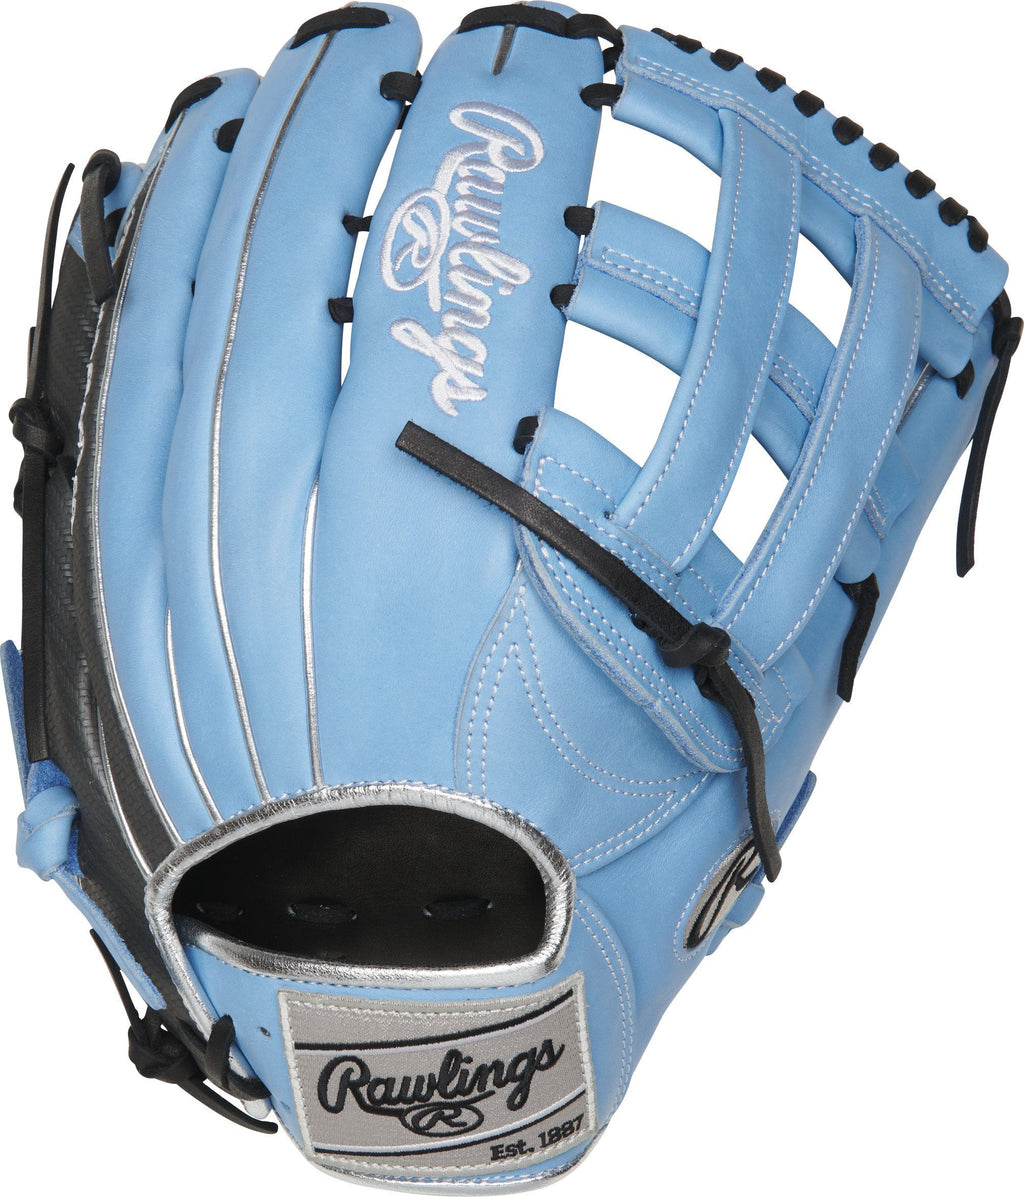 "Rawlings Heart of the Hide Color Sync 4.0 12.75"" Baseball Glove: PRO3039-6CB"